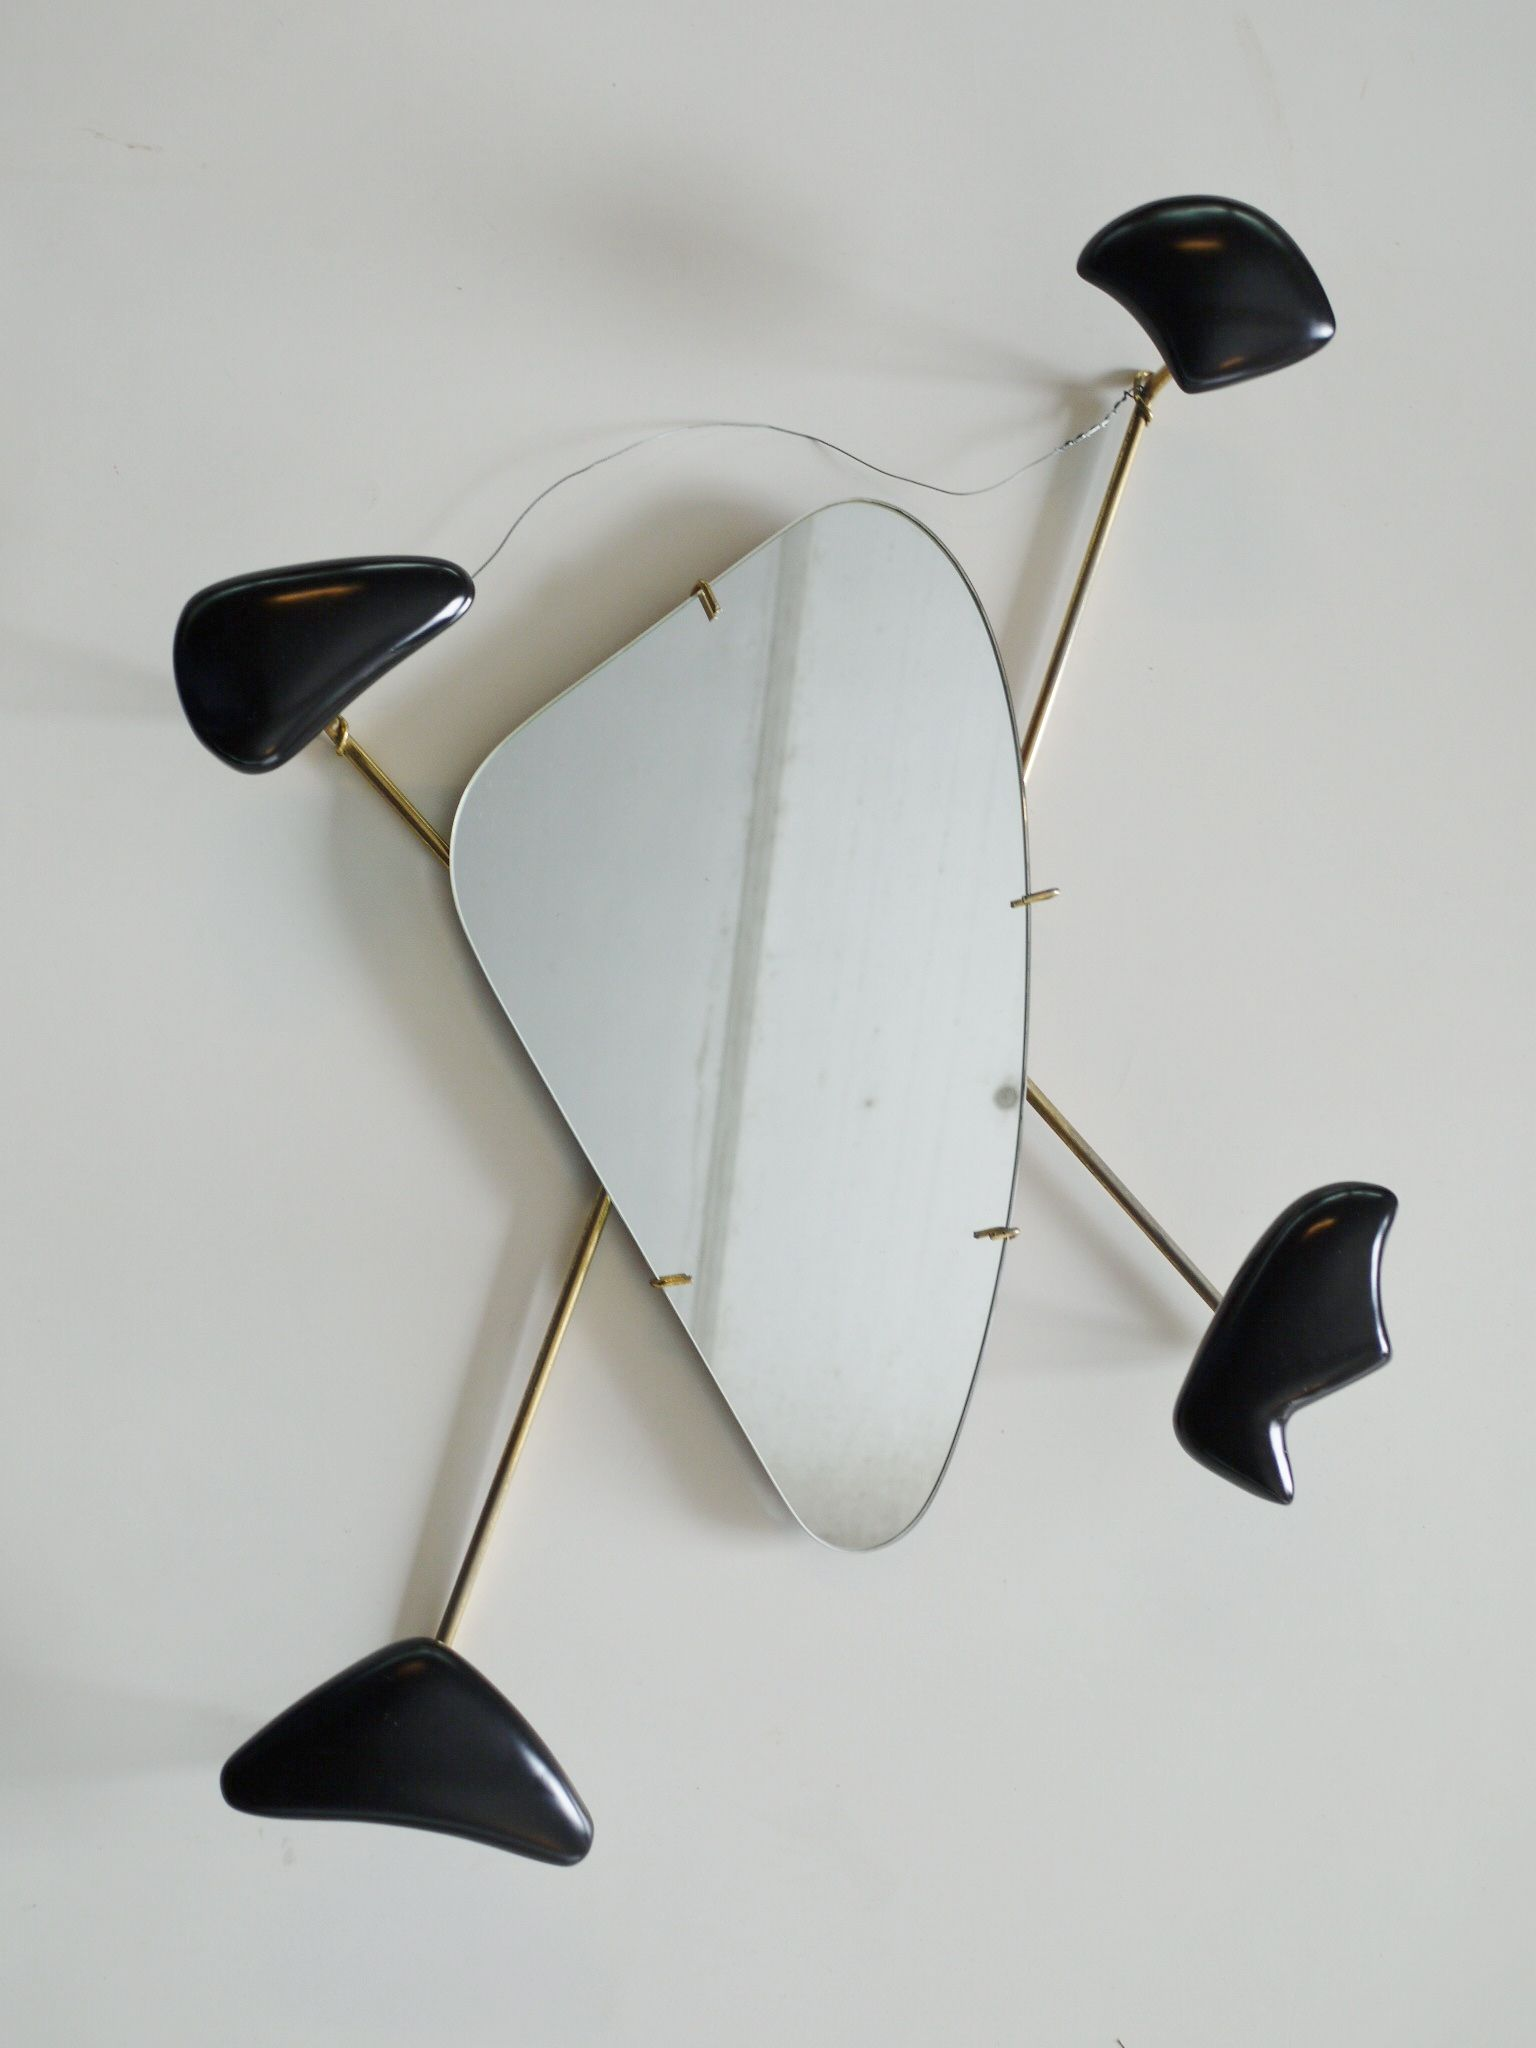 Rare 1950s French wall mirror Georges Jouve and Marcel